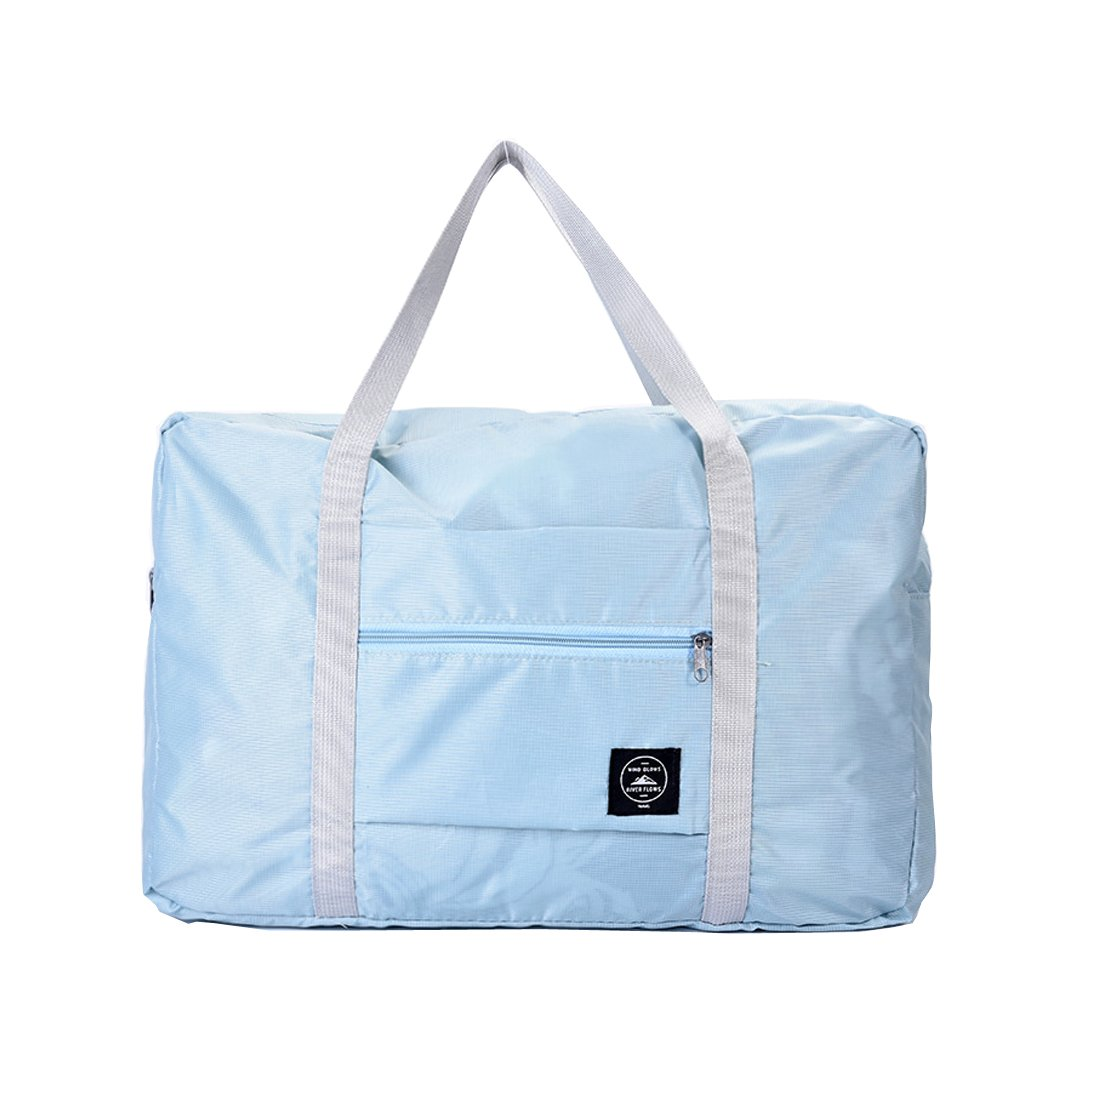 Travel Luggage Bag Reusable Folding Large Capacity Easy Packing Carry Storage Tote Bag (Blue)